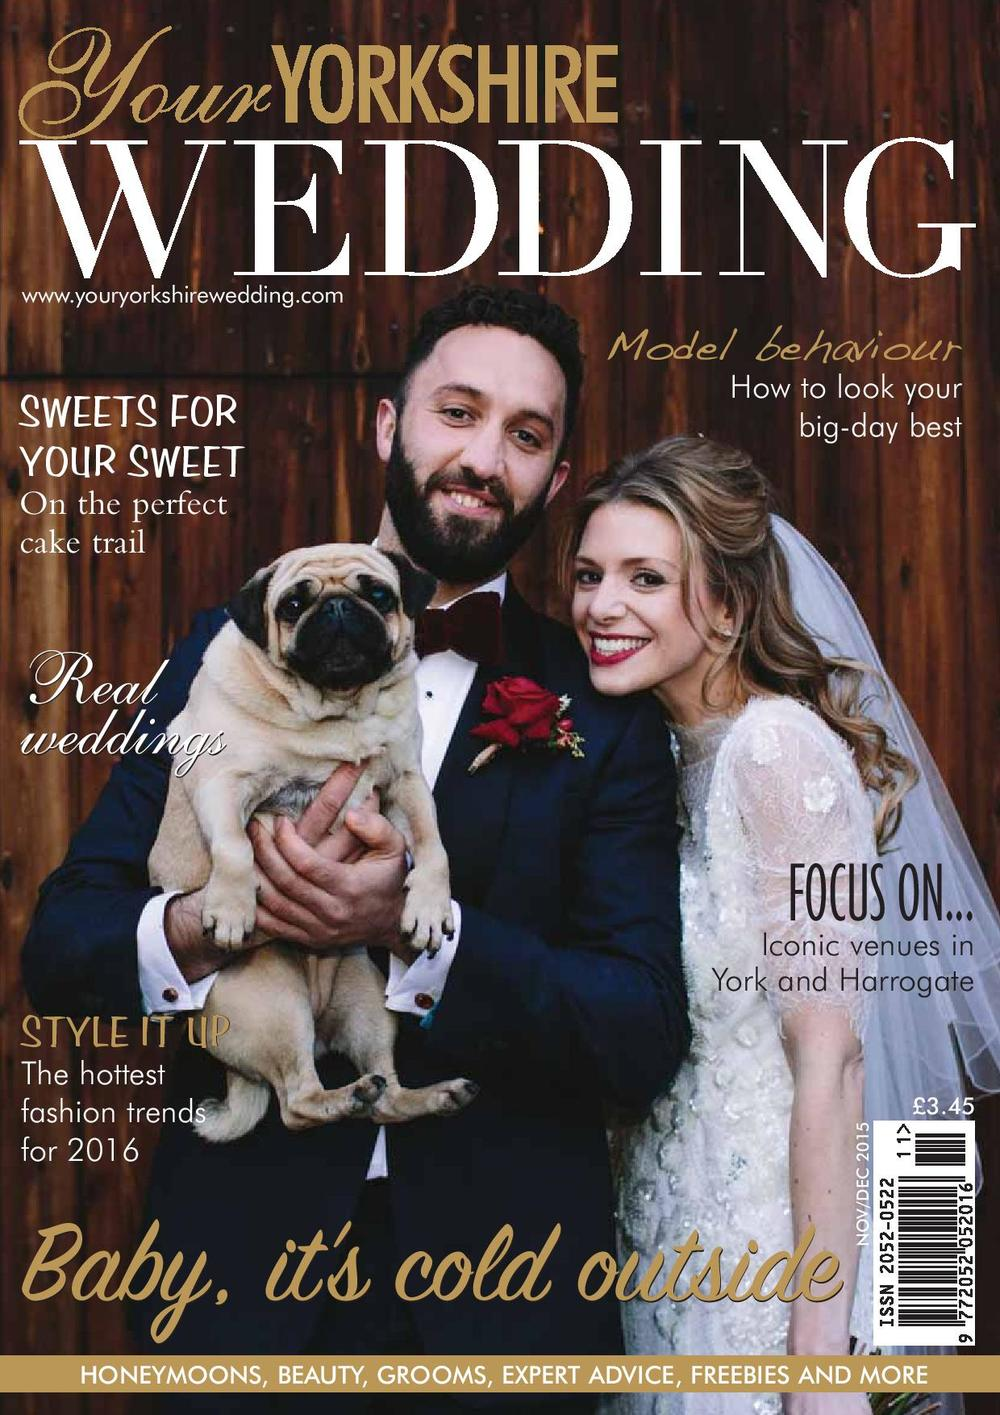 The Normans on the cover of Your Yorkshire Wedding magazine, Nov-Dec 2015 issue